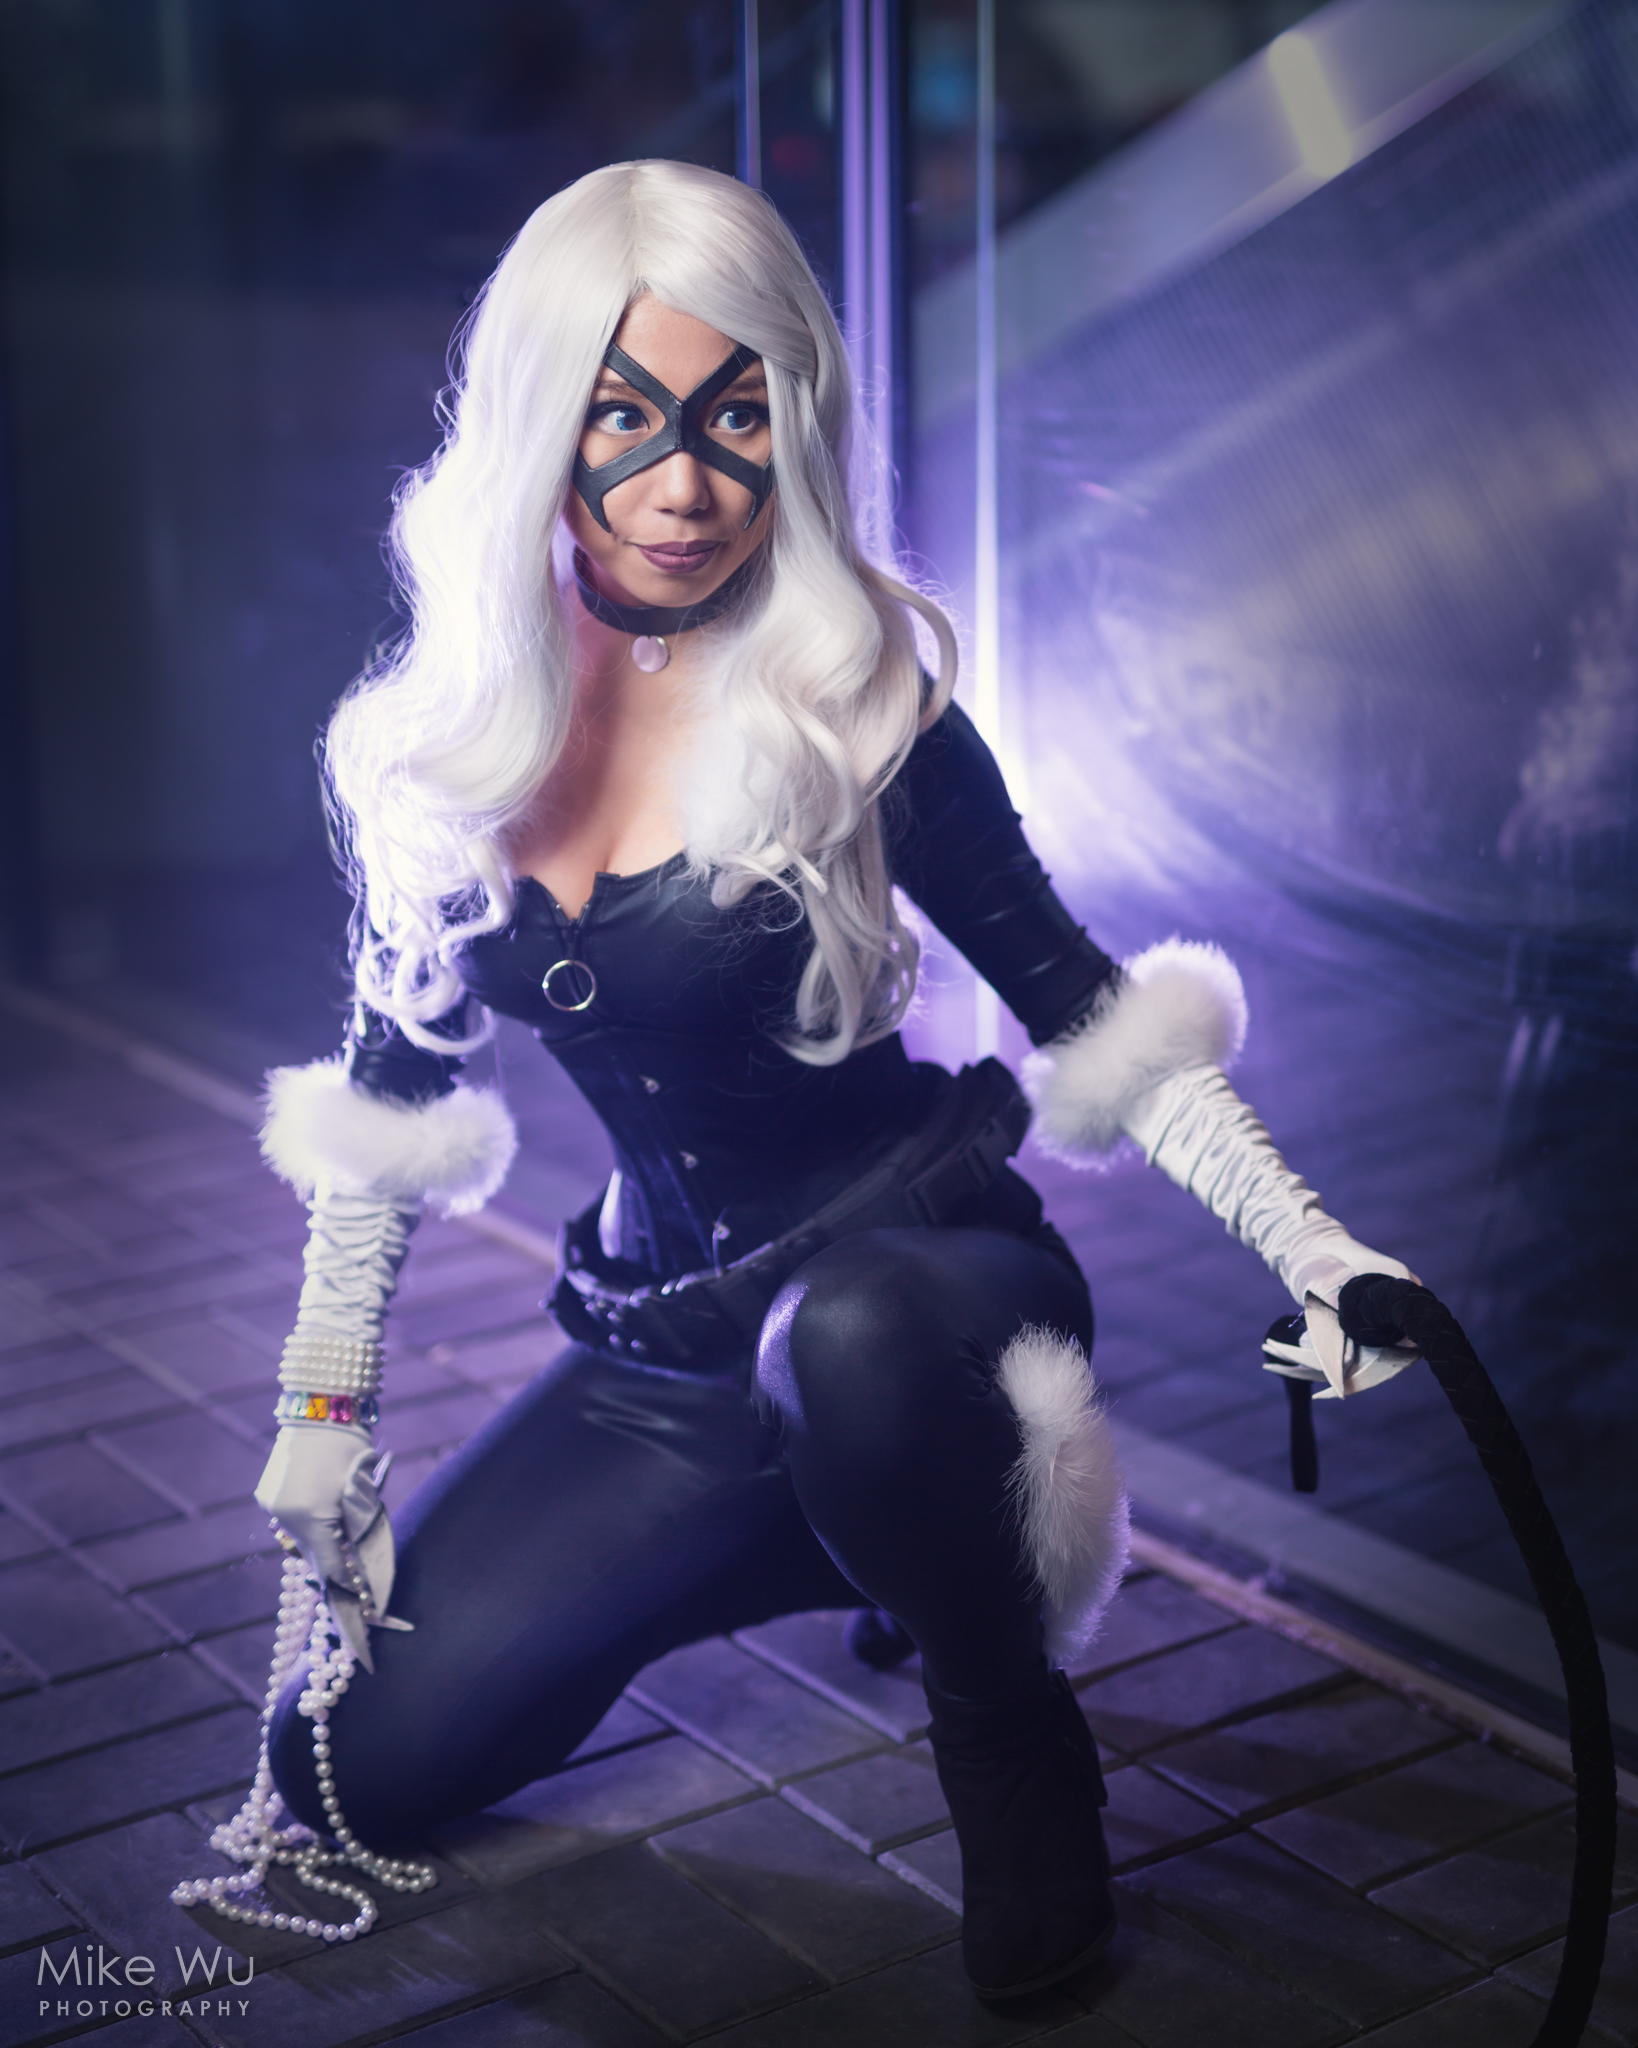 black cat, dc, pearls, thief, vancouver, cosplay, wig, whip, jewelry, corset, night